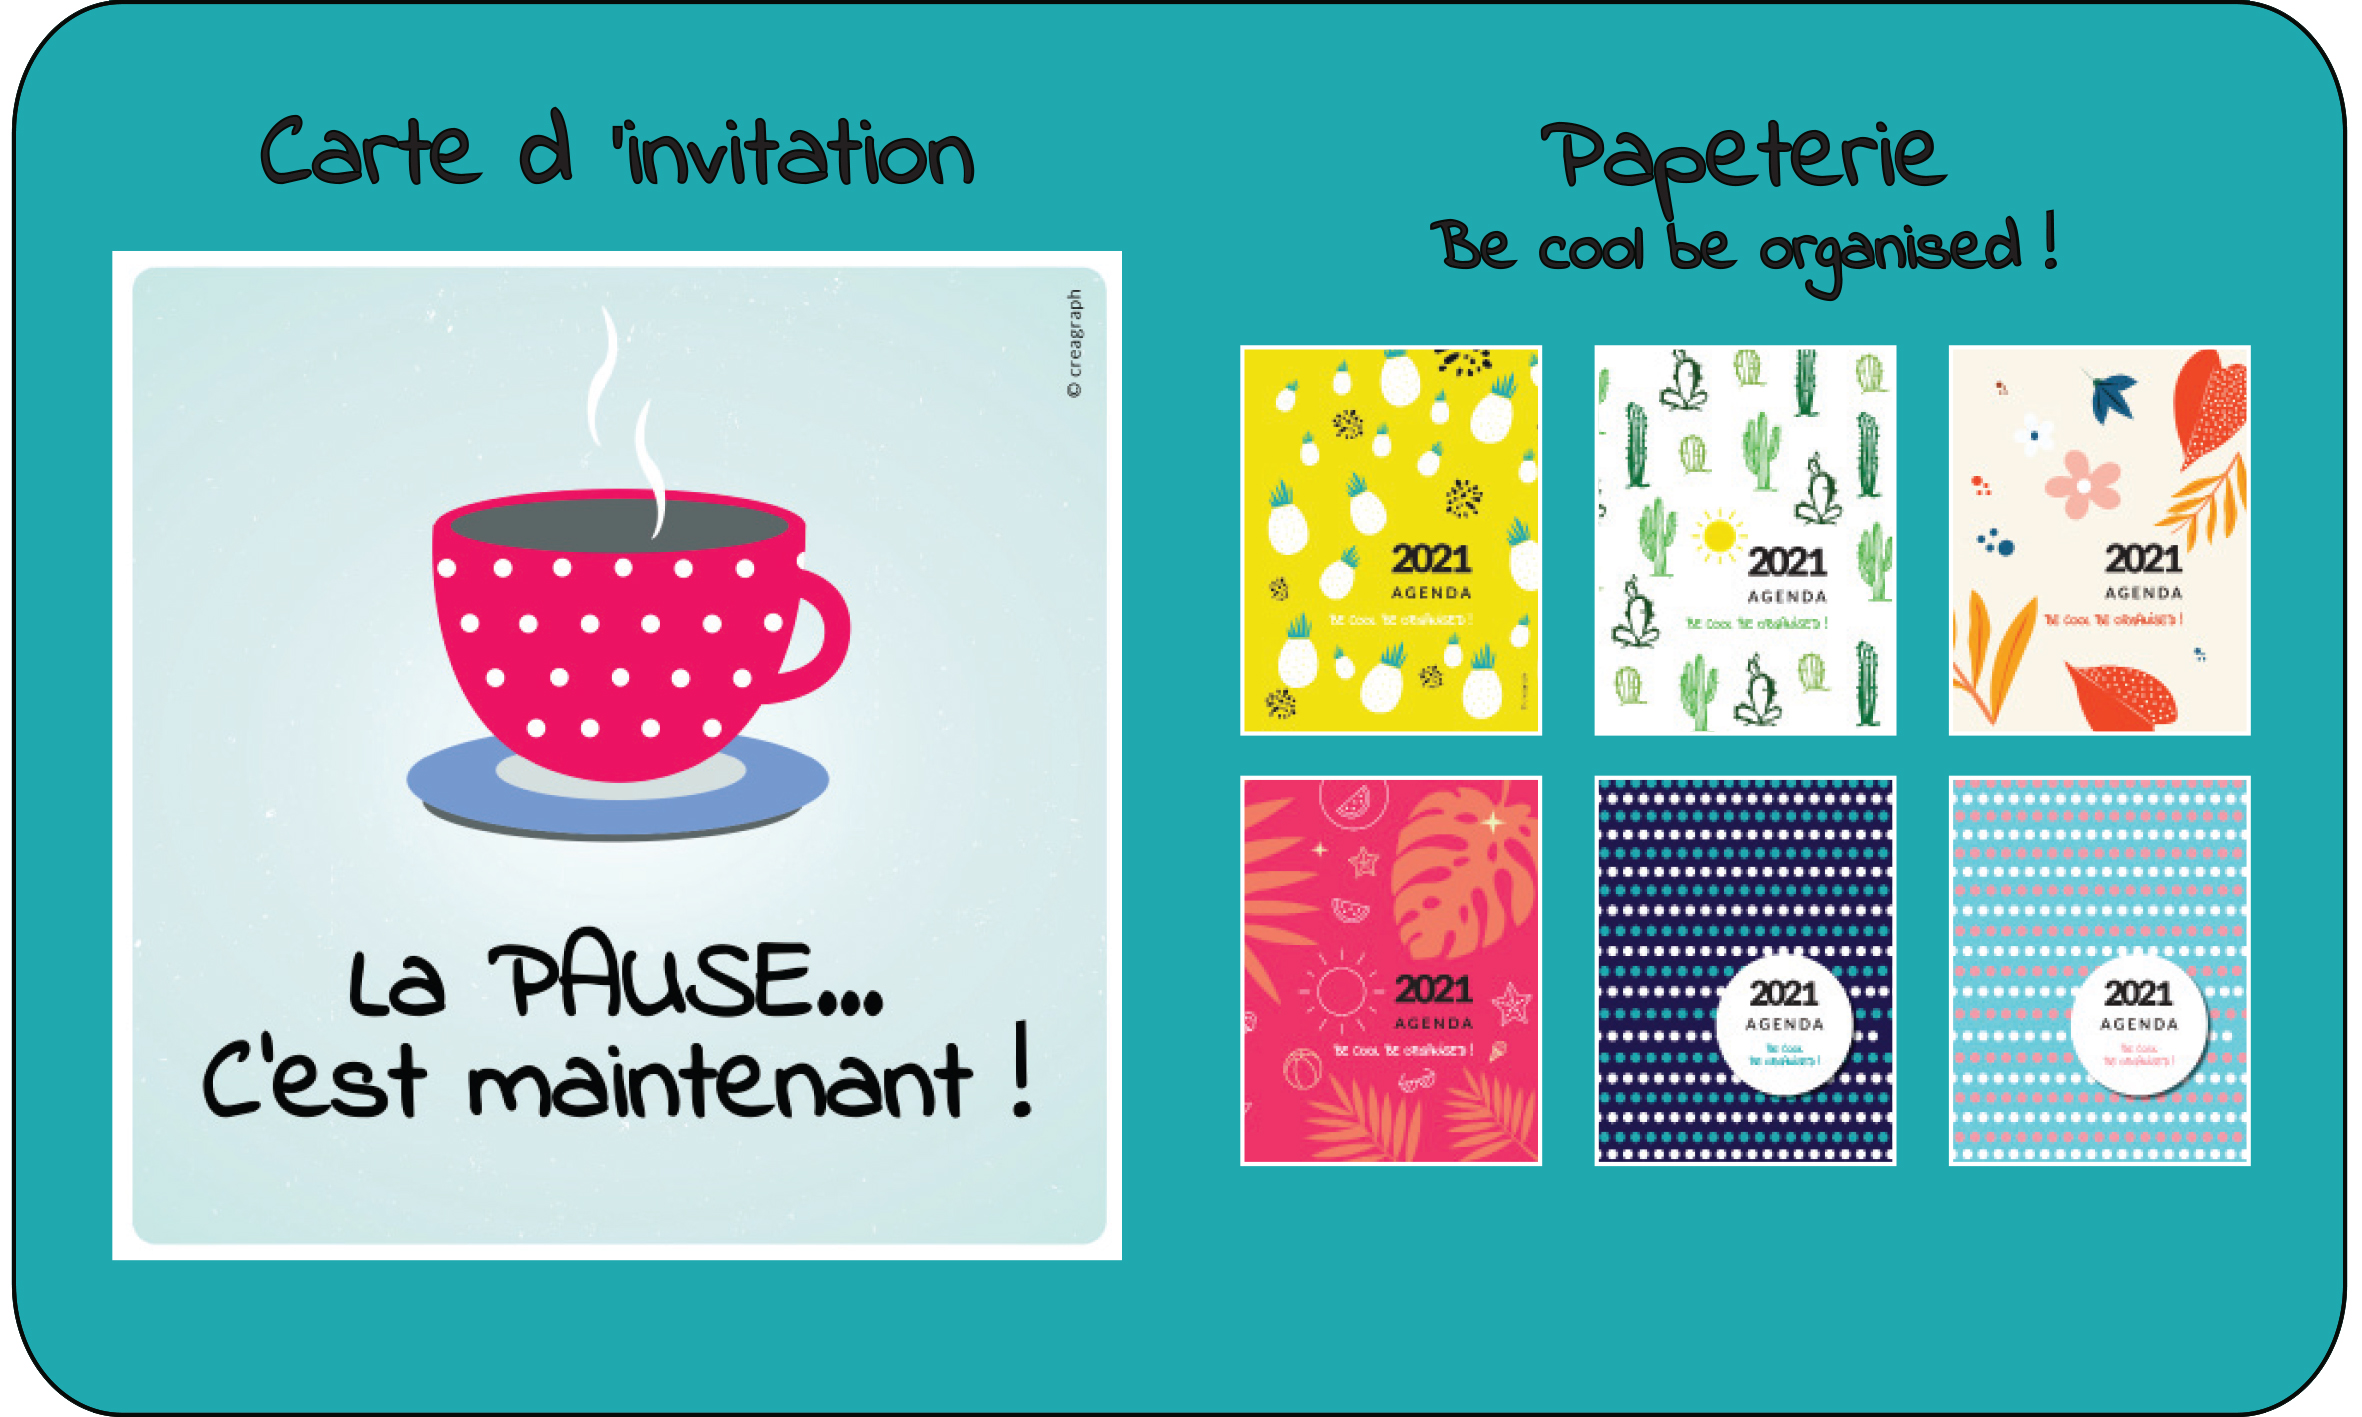 Carte d'invitation-papeterie.indd